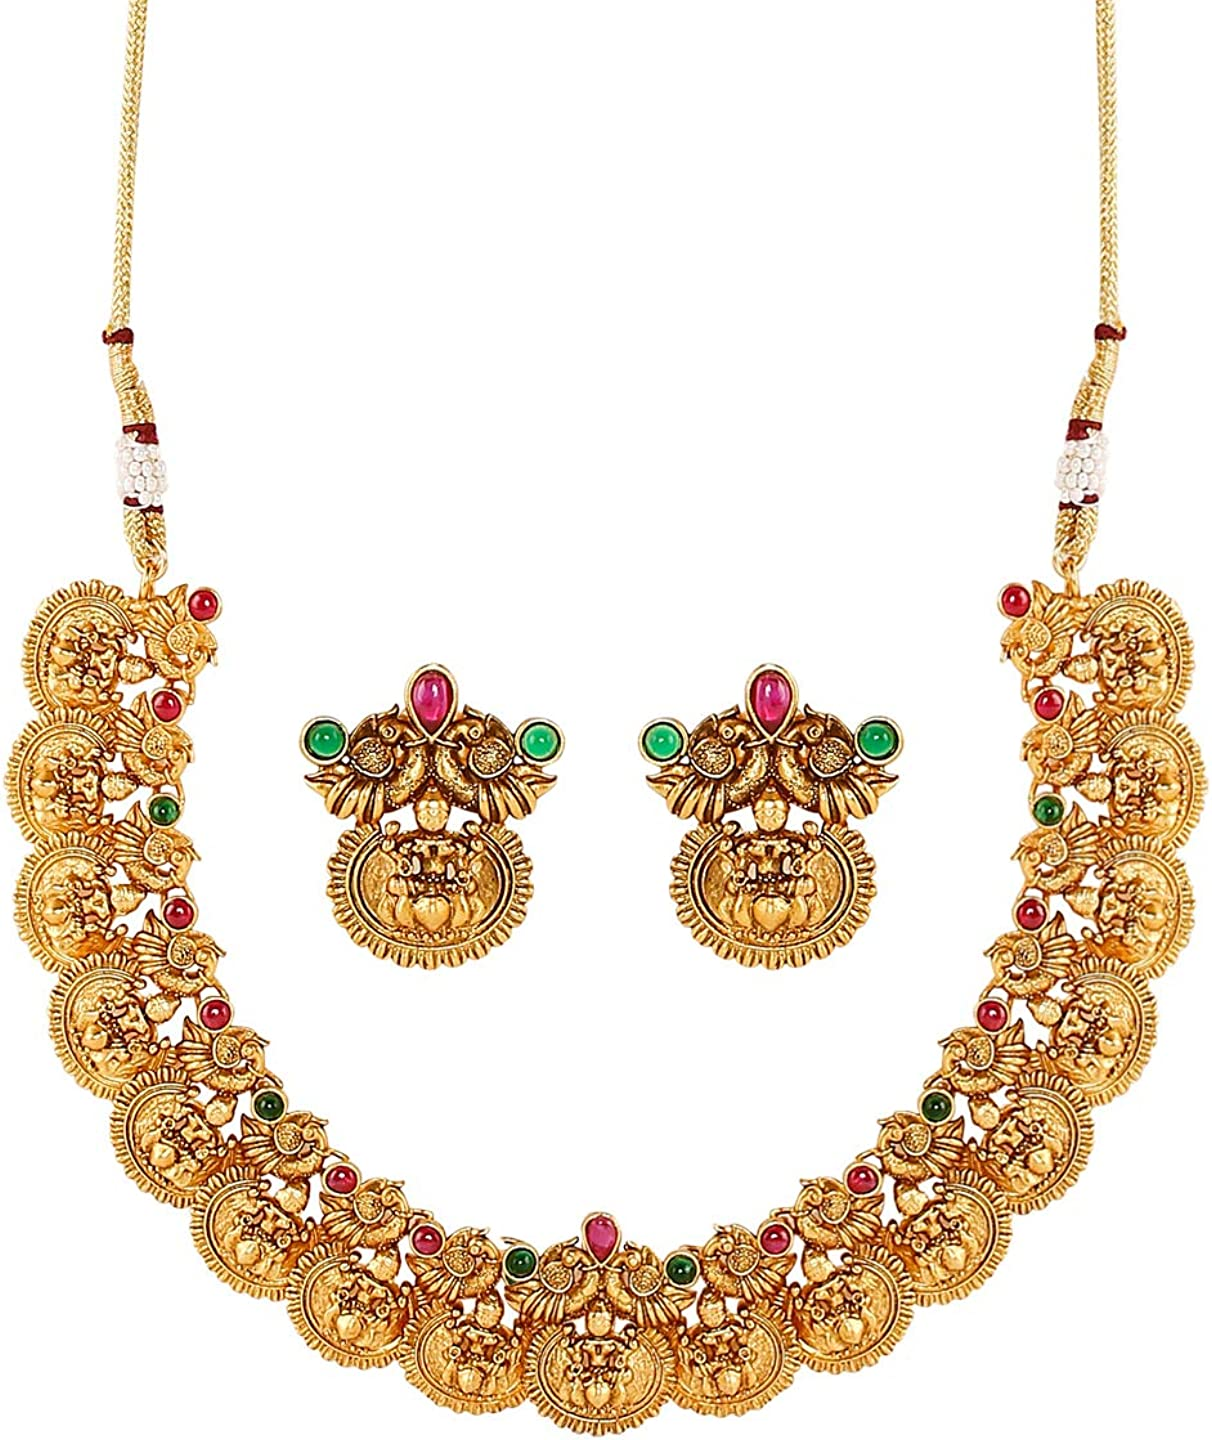 bodha Traditional Indian Handcrafted 18K Antique Gold Plated Godess Lakshmi Temple Jewellery Necklace with Matching Earring for Women (SJ_2802)